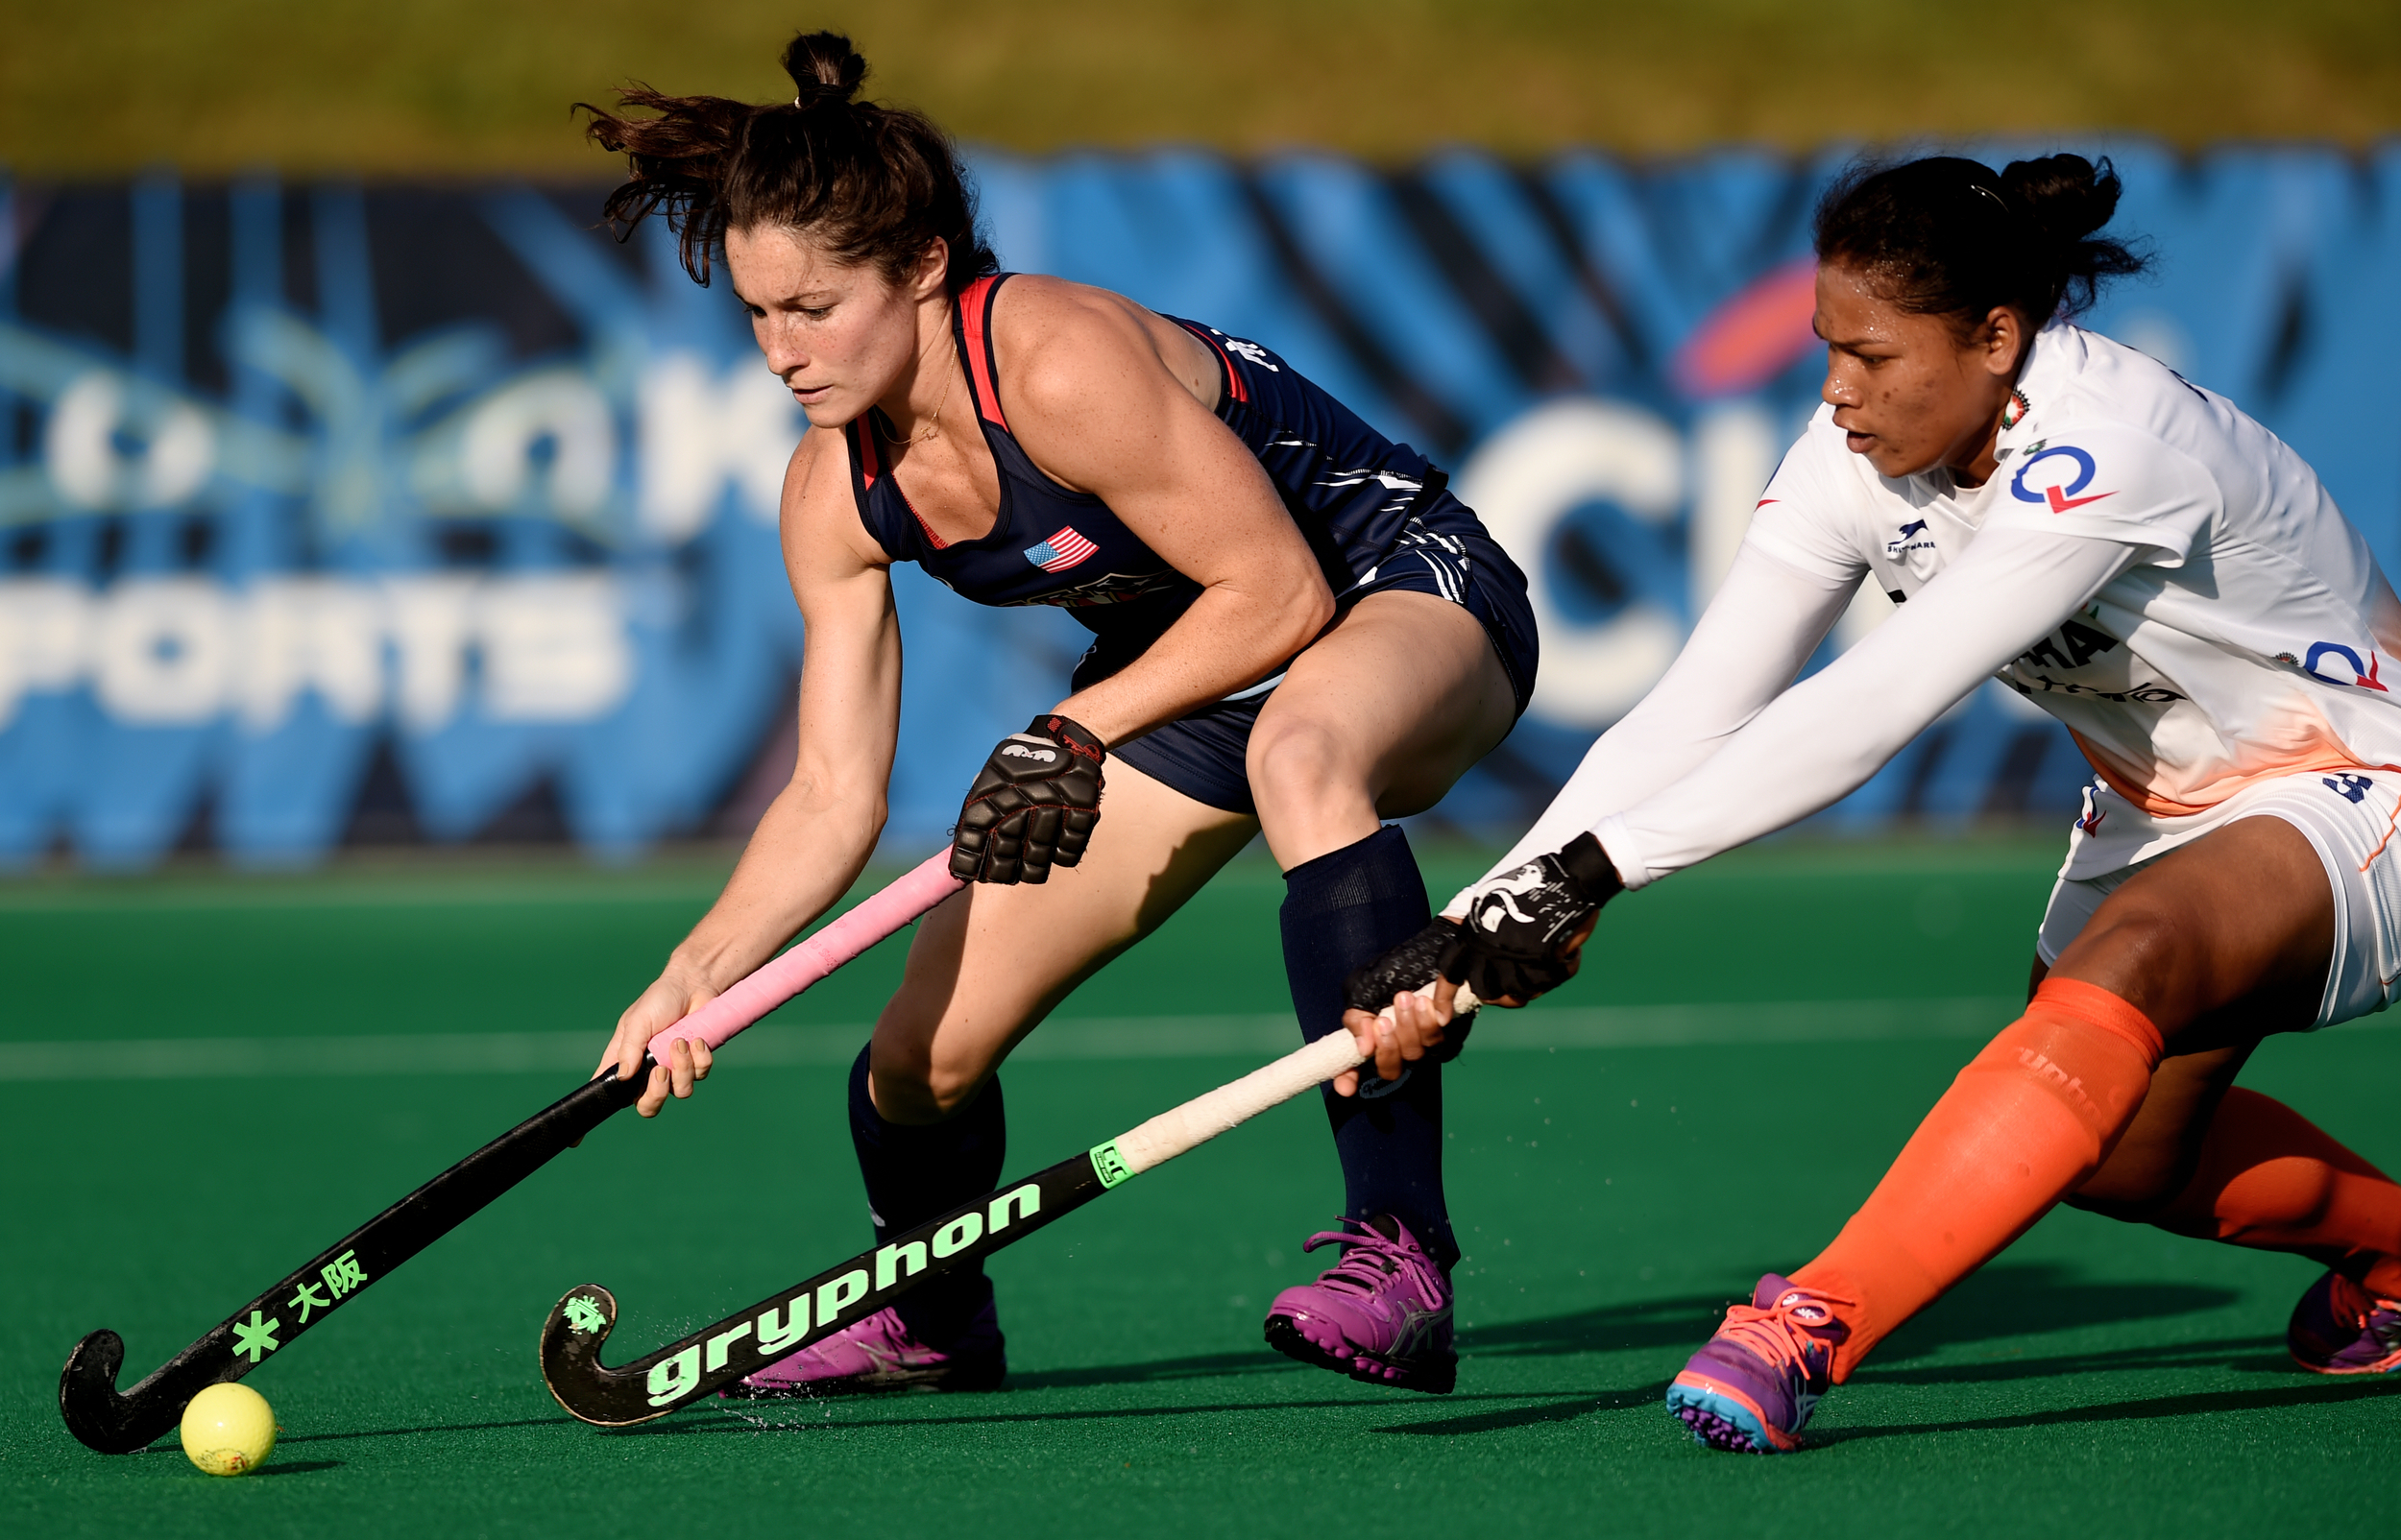 Michelle Vittese fights to keep the ball at the USA National Field Hockey Team's scrimmage against India at Spooky Nook in Manheim, PA, on July 20, 2016. (Reading Eagle: Sarah Stier)